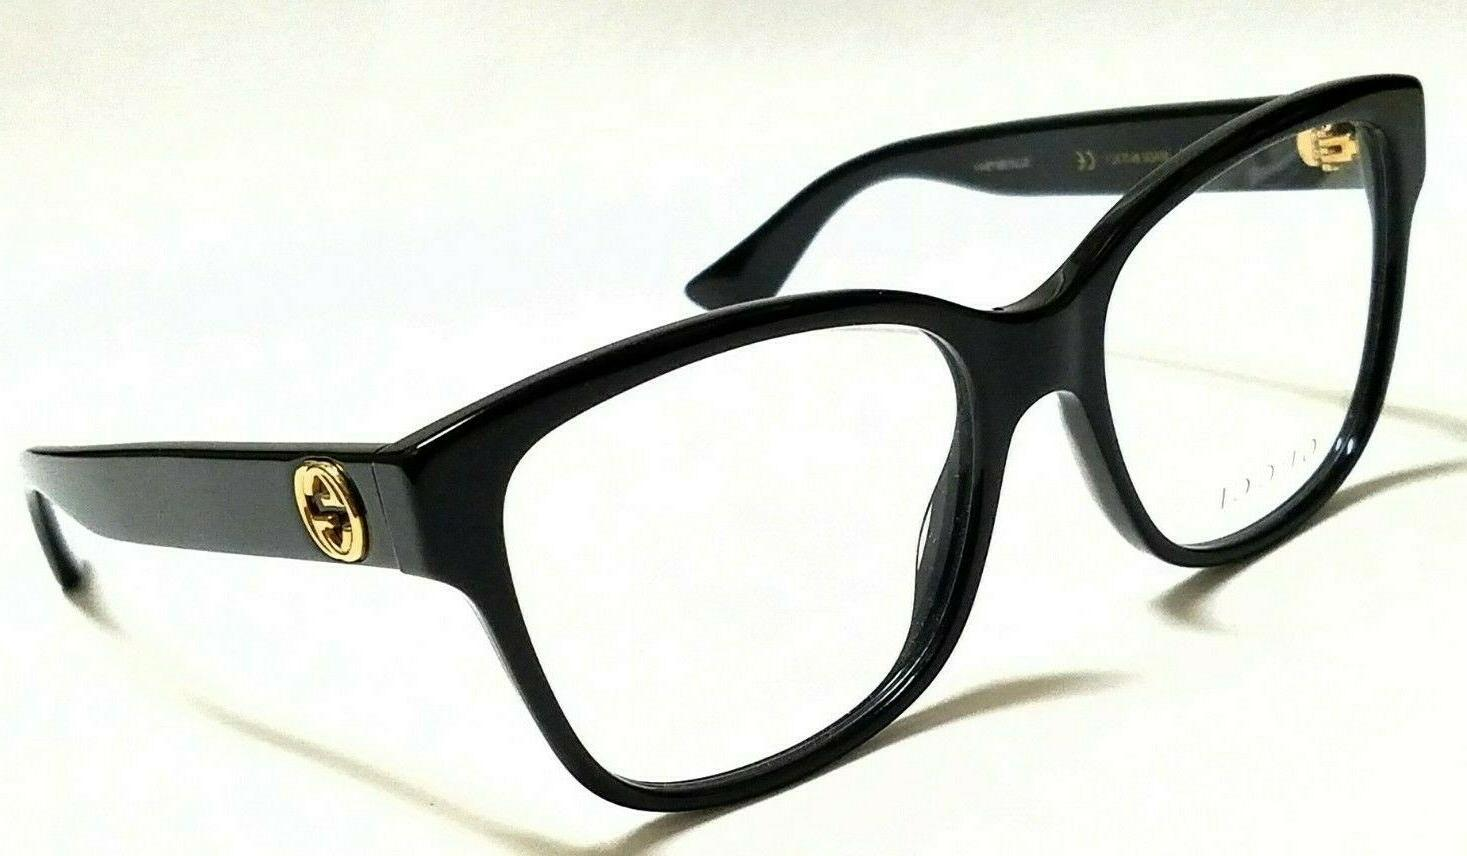 new authentic gg0038o 001 black 54 17